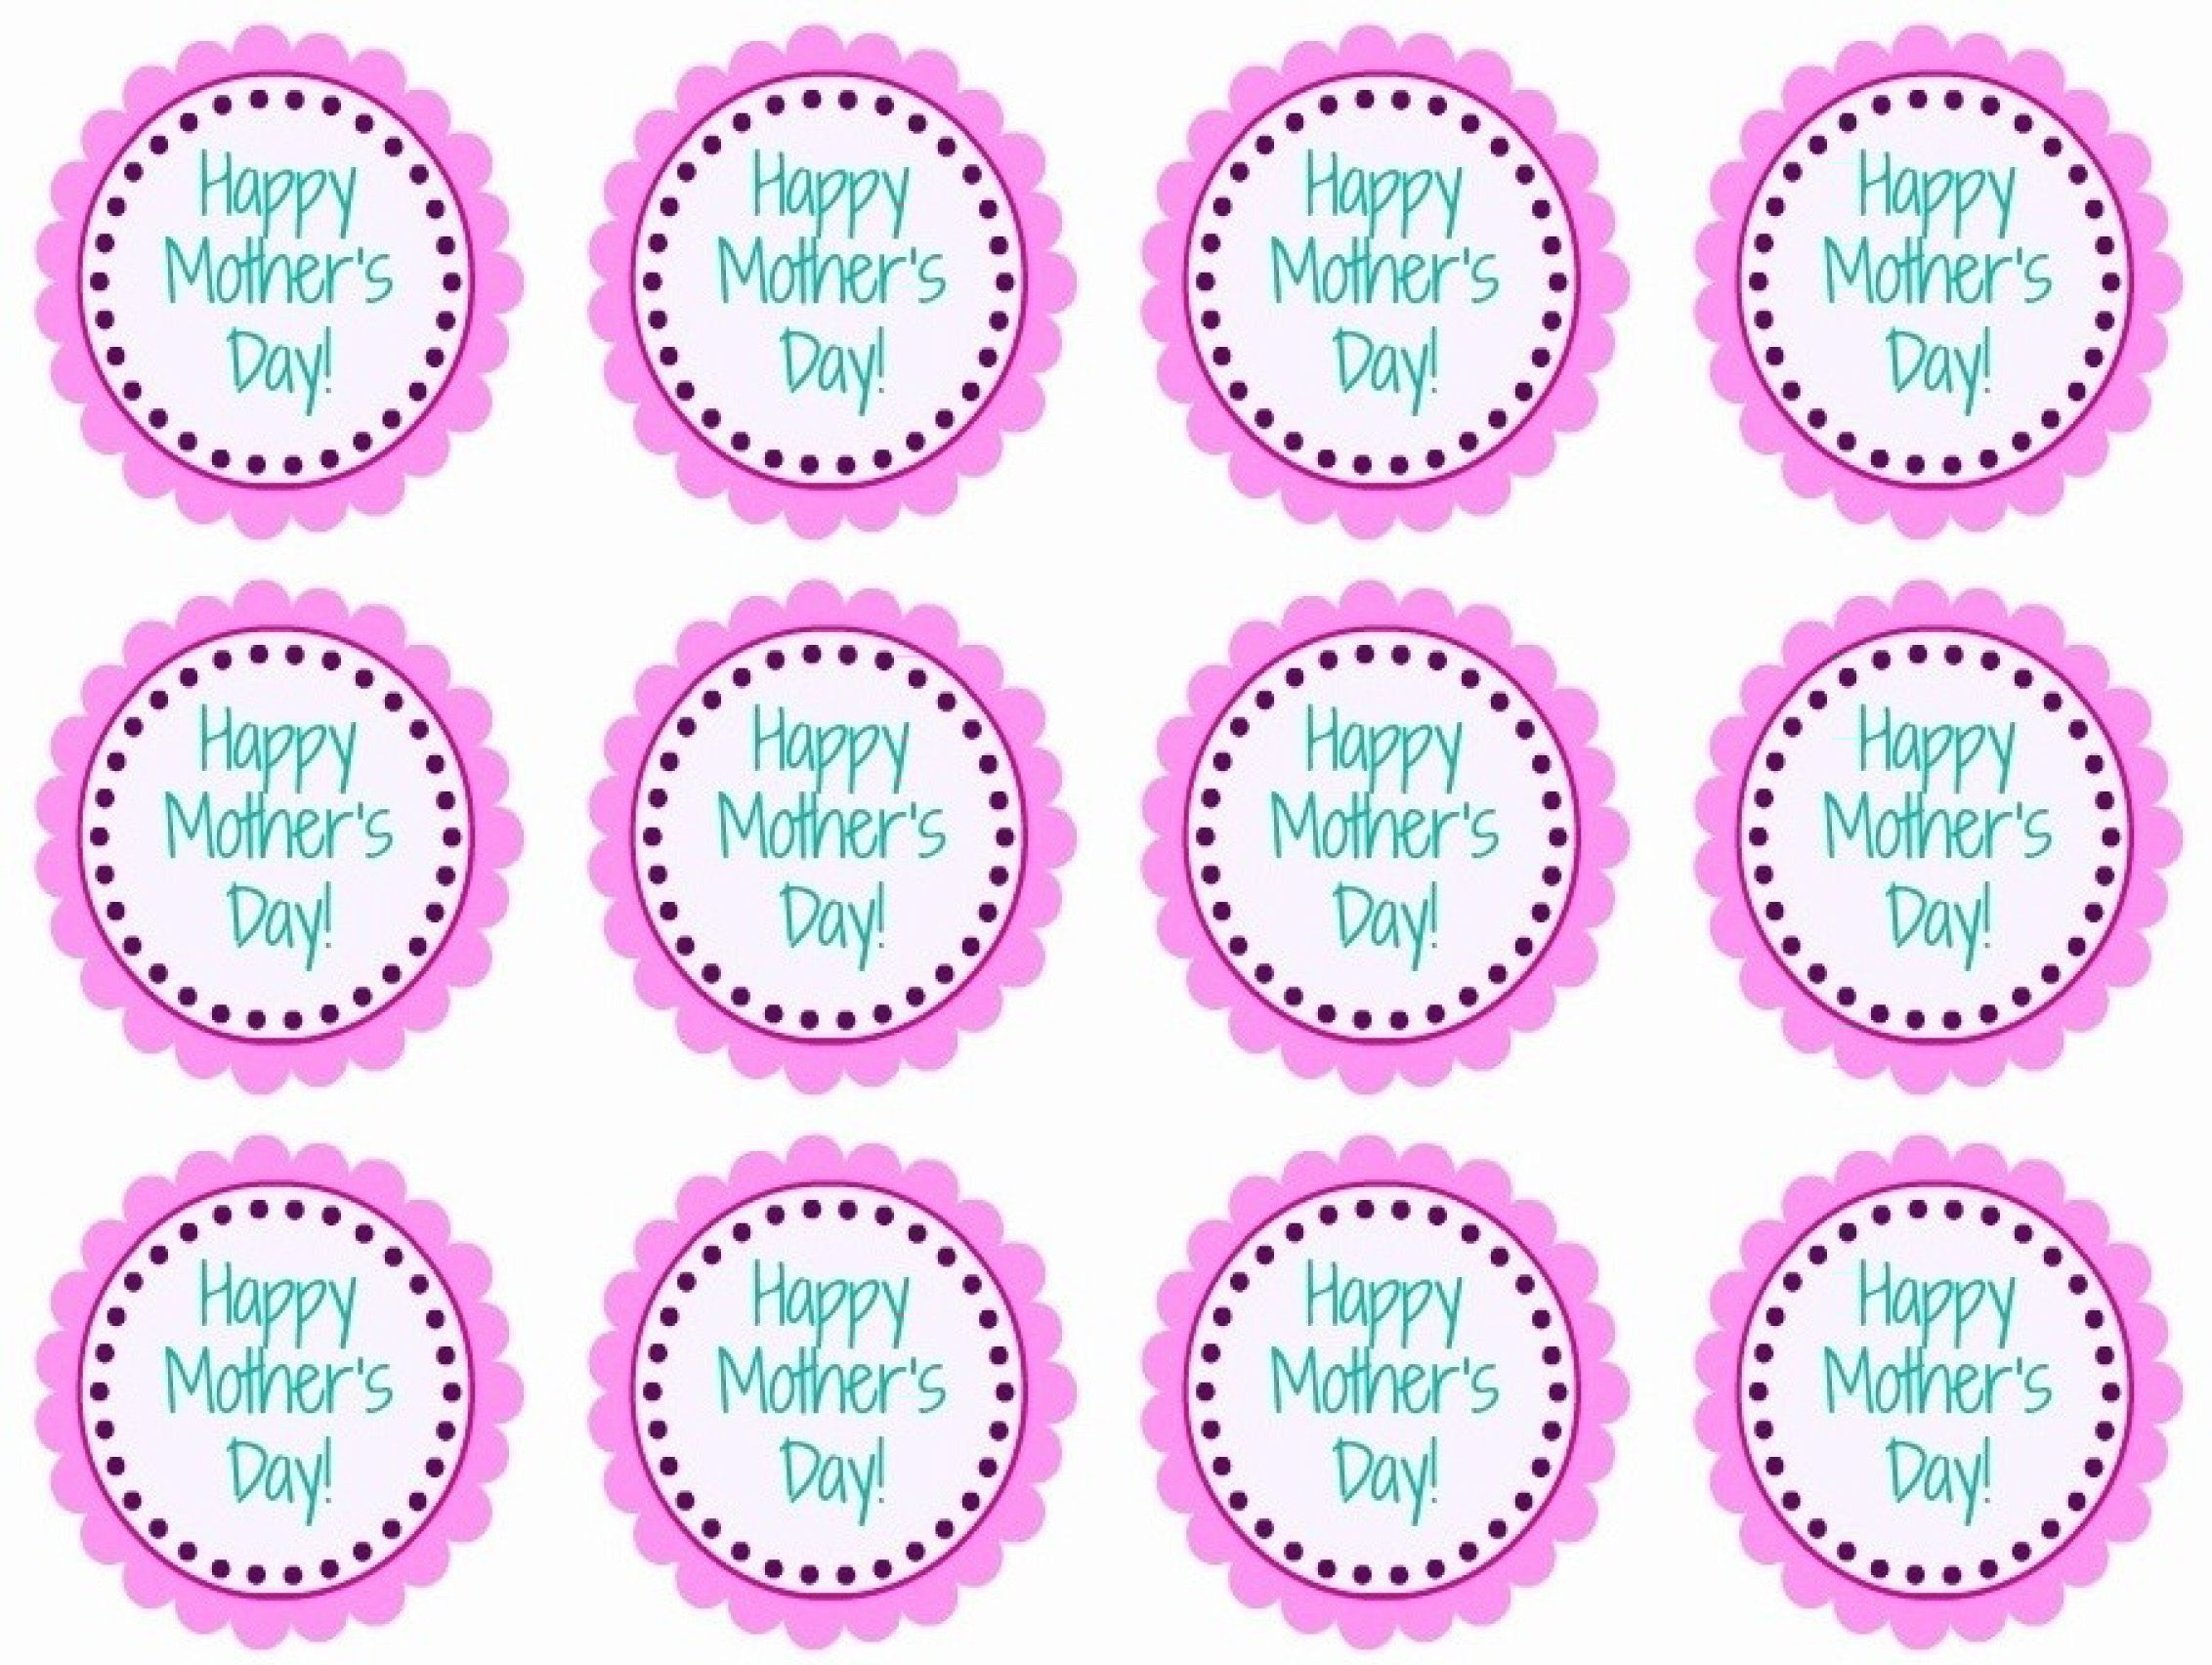 Mother S Day Printable Cupcake Toppers Diy Craft Cupcake Toppers Printable Happy Mothers Mothers Day May